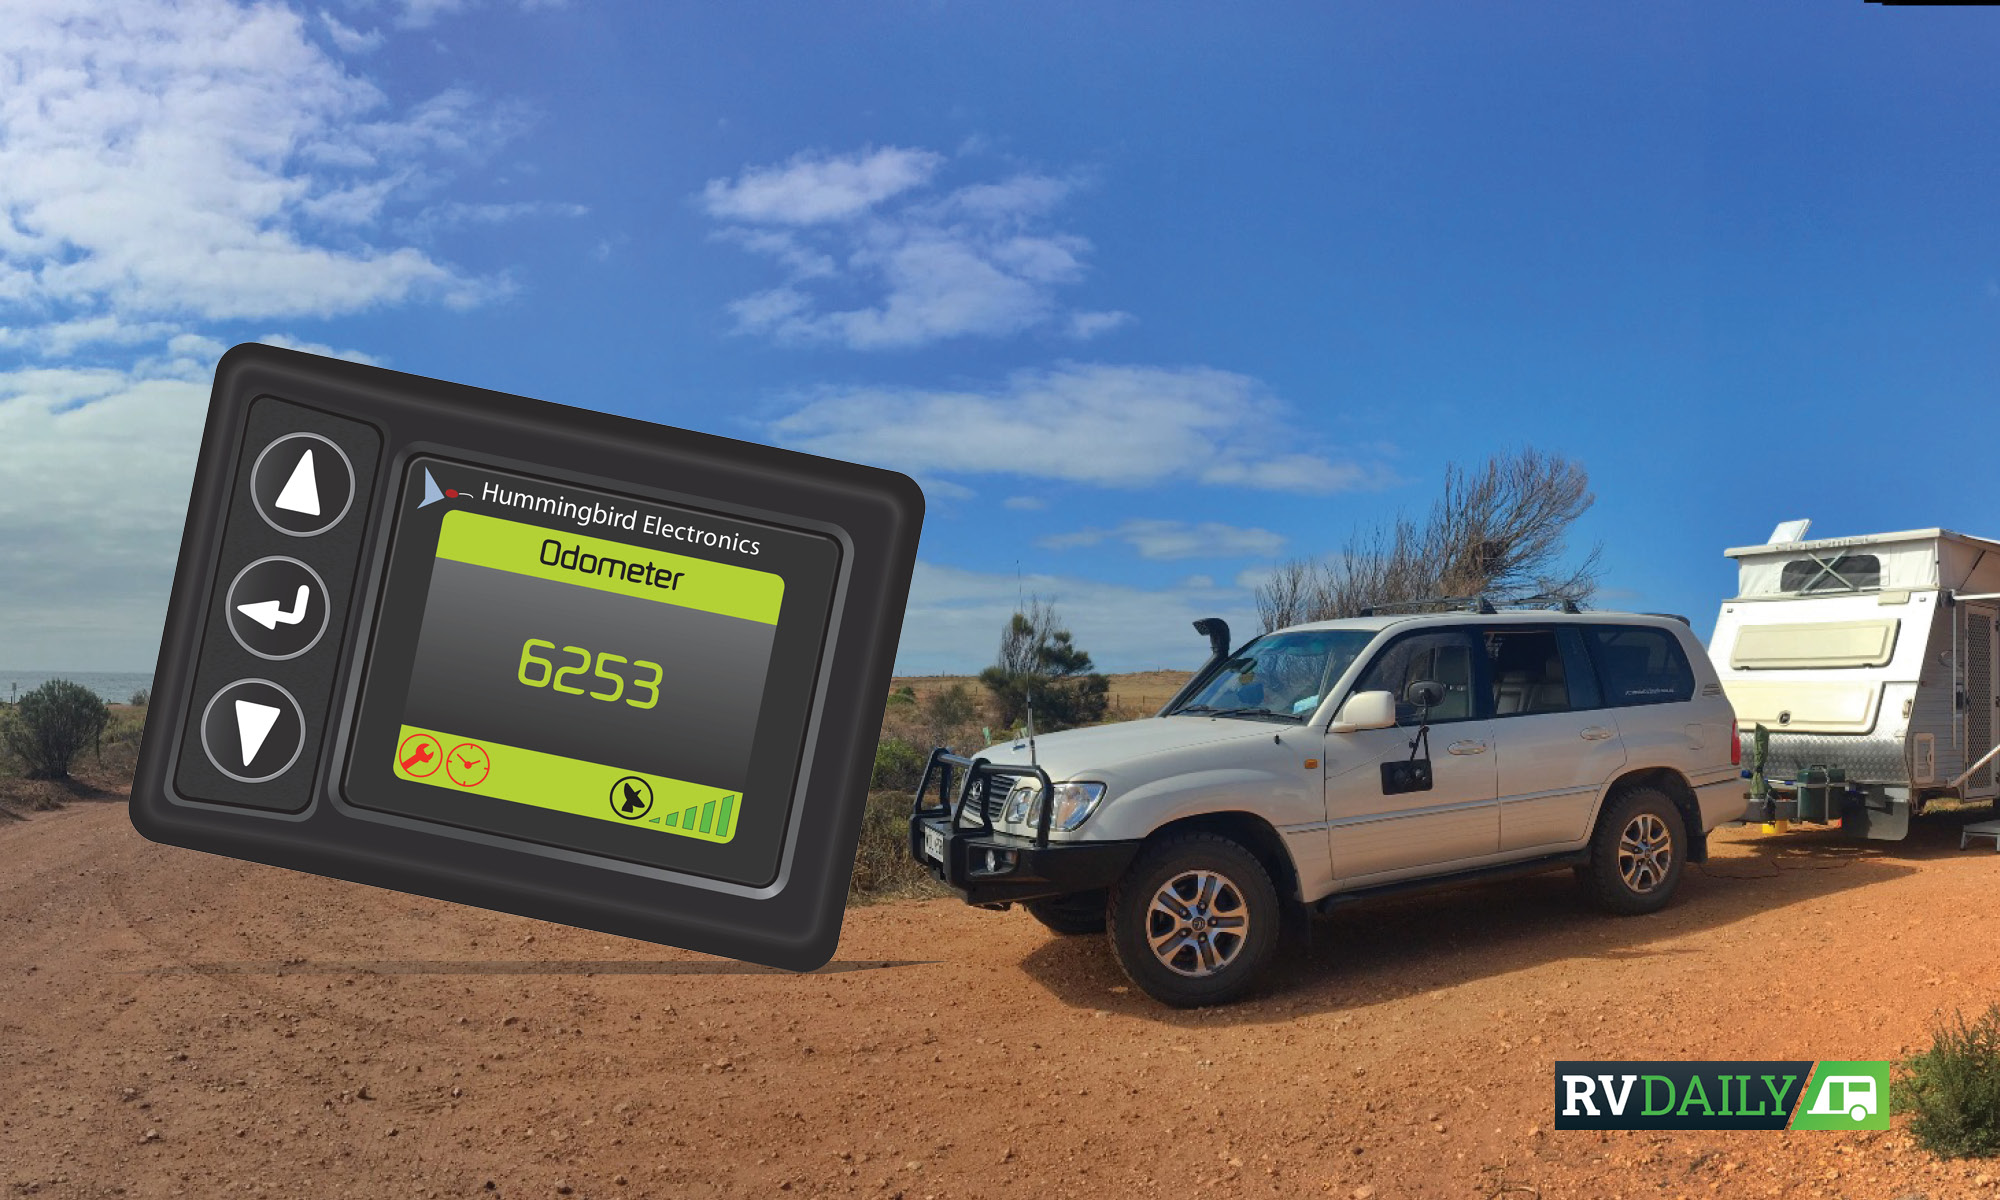 Should an odometer be fitted to every caravan?